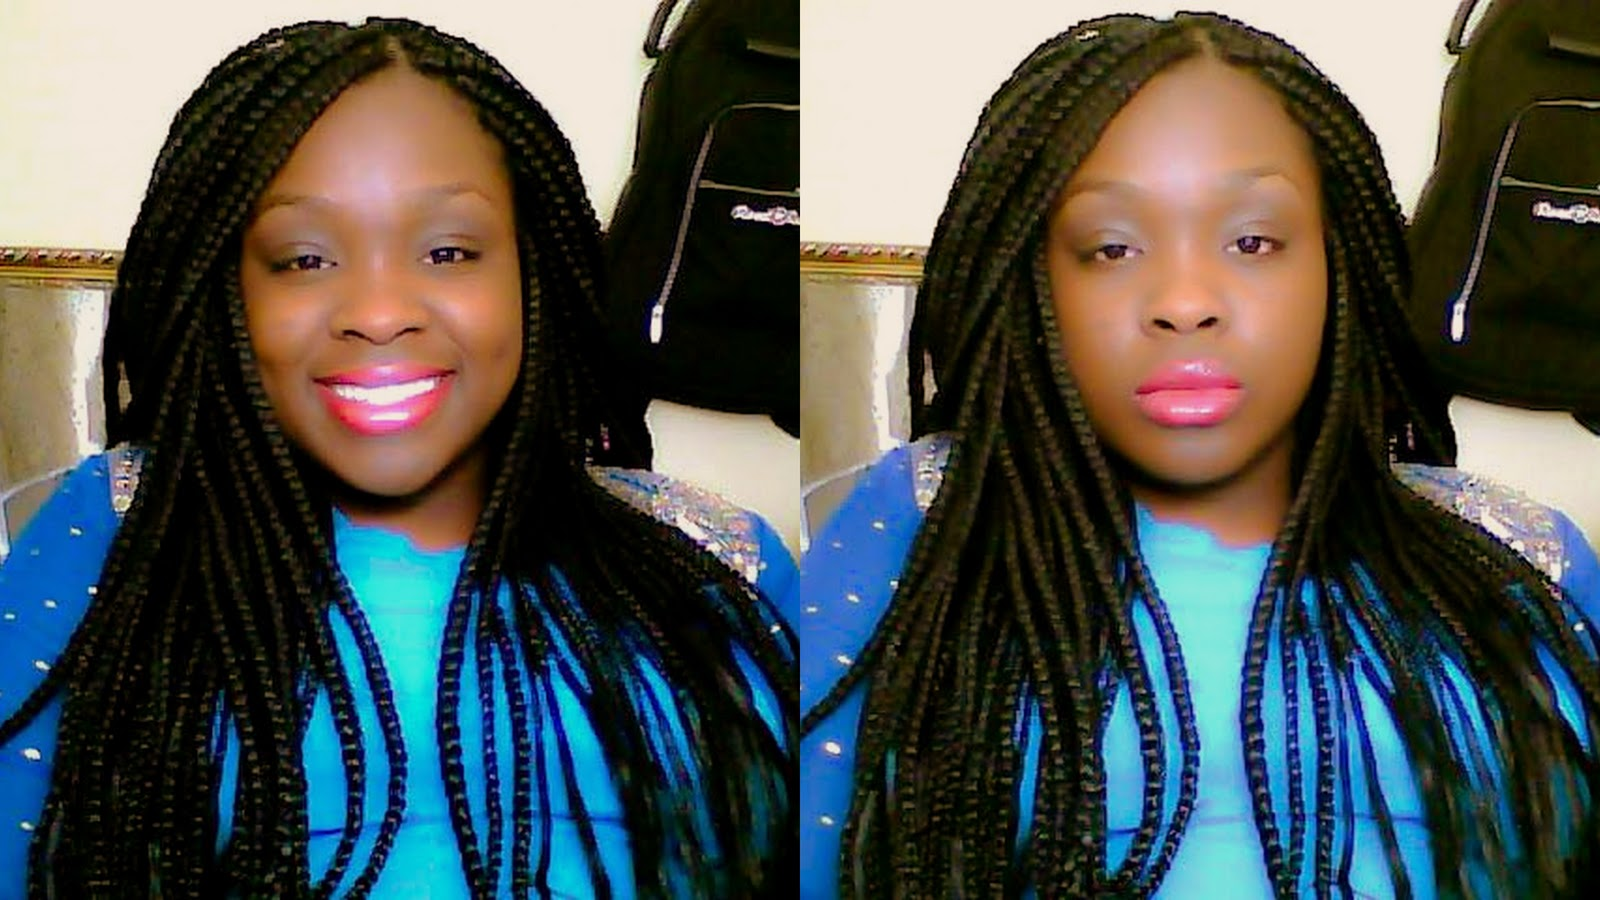 Re: Big Patra-like braids on natural hair